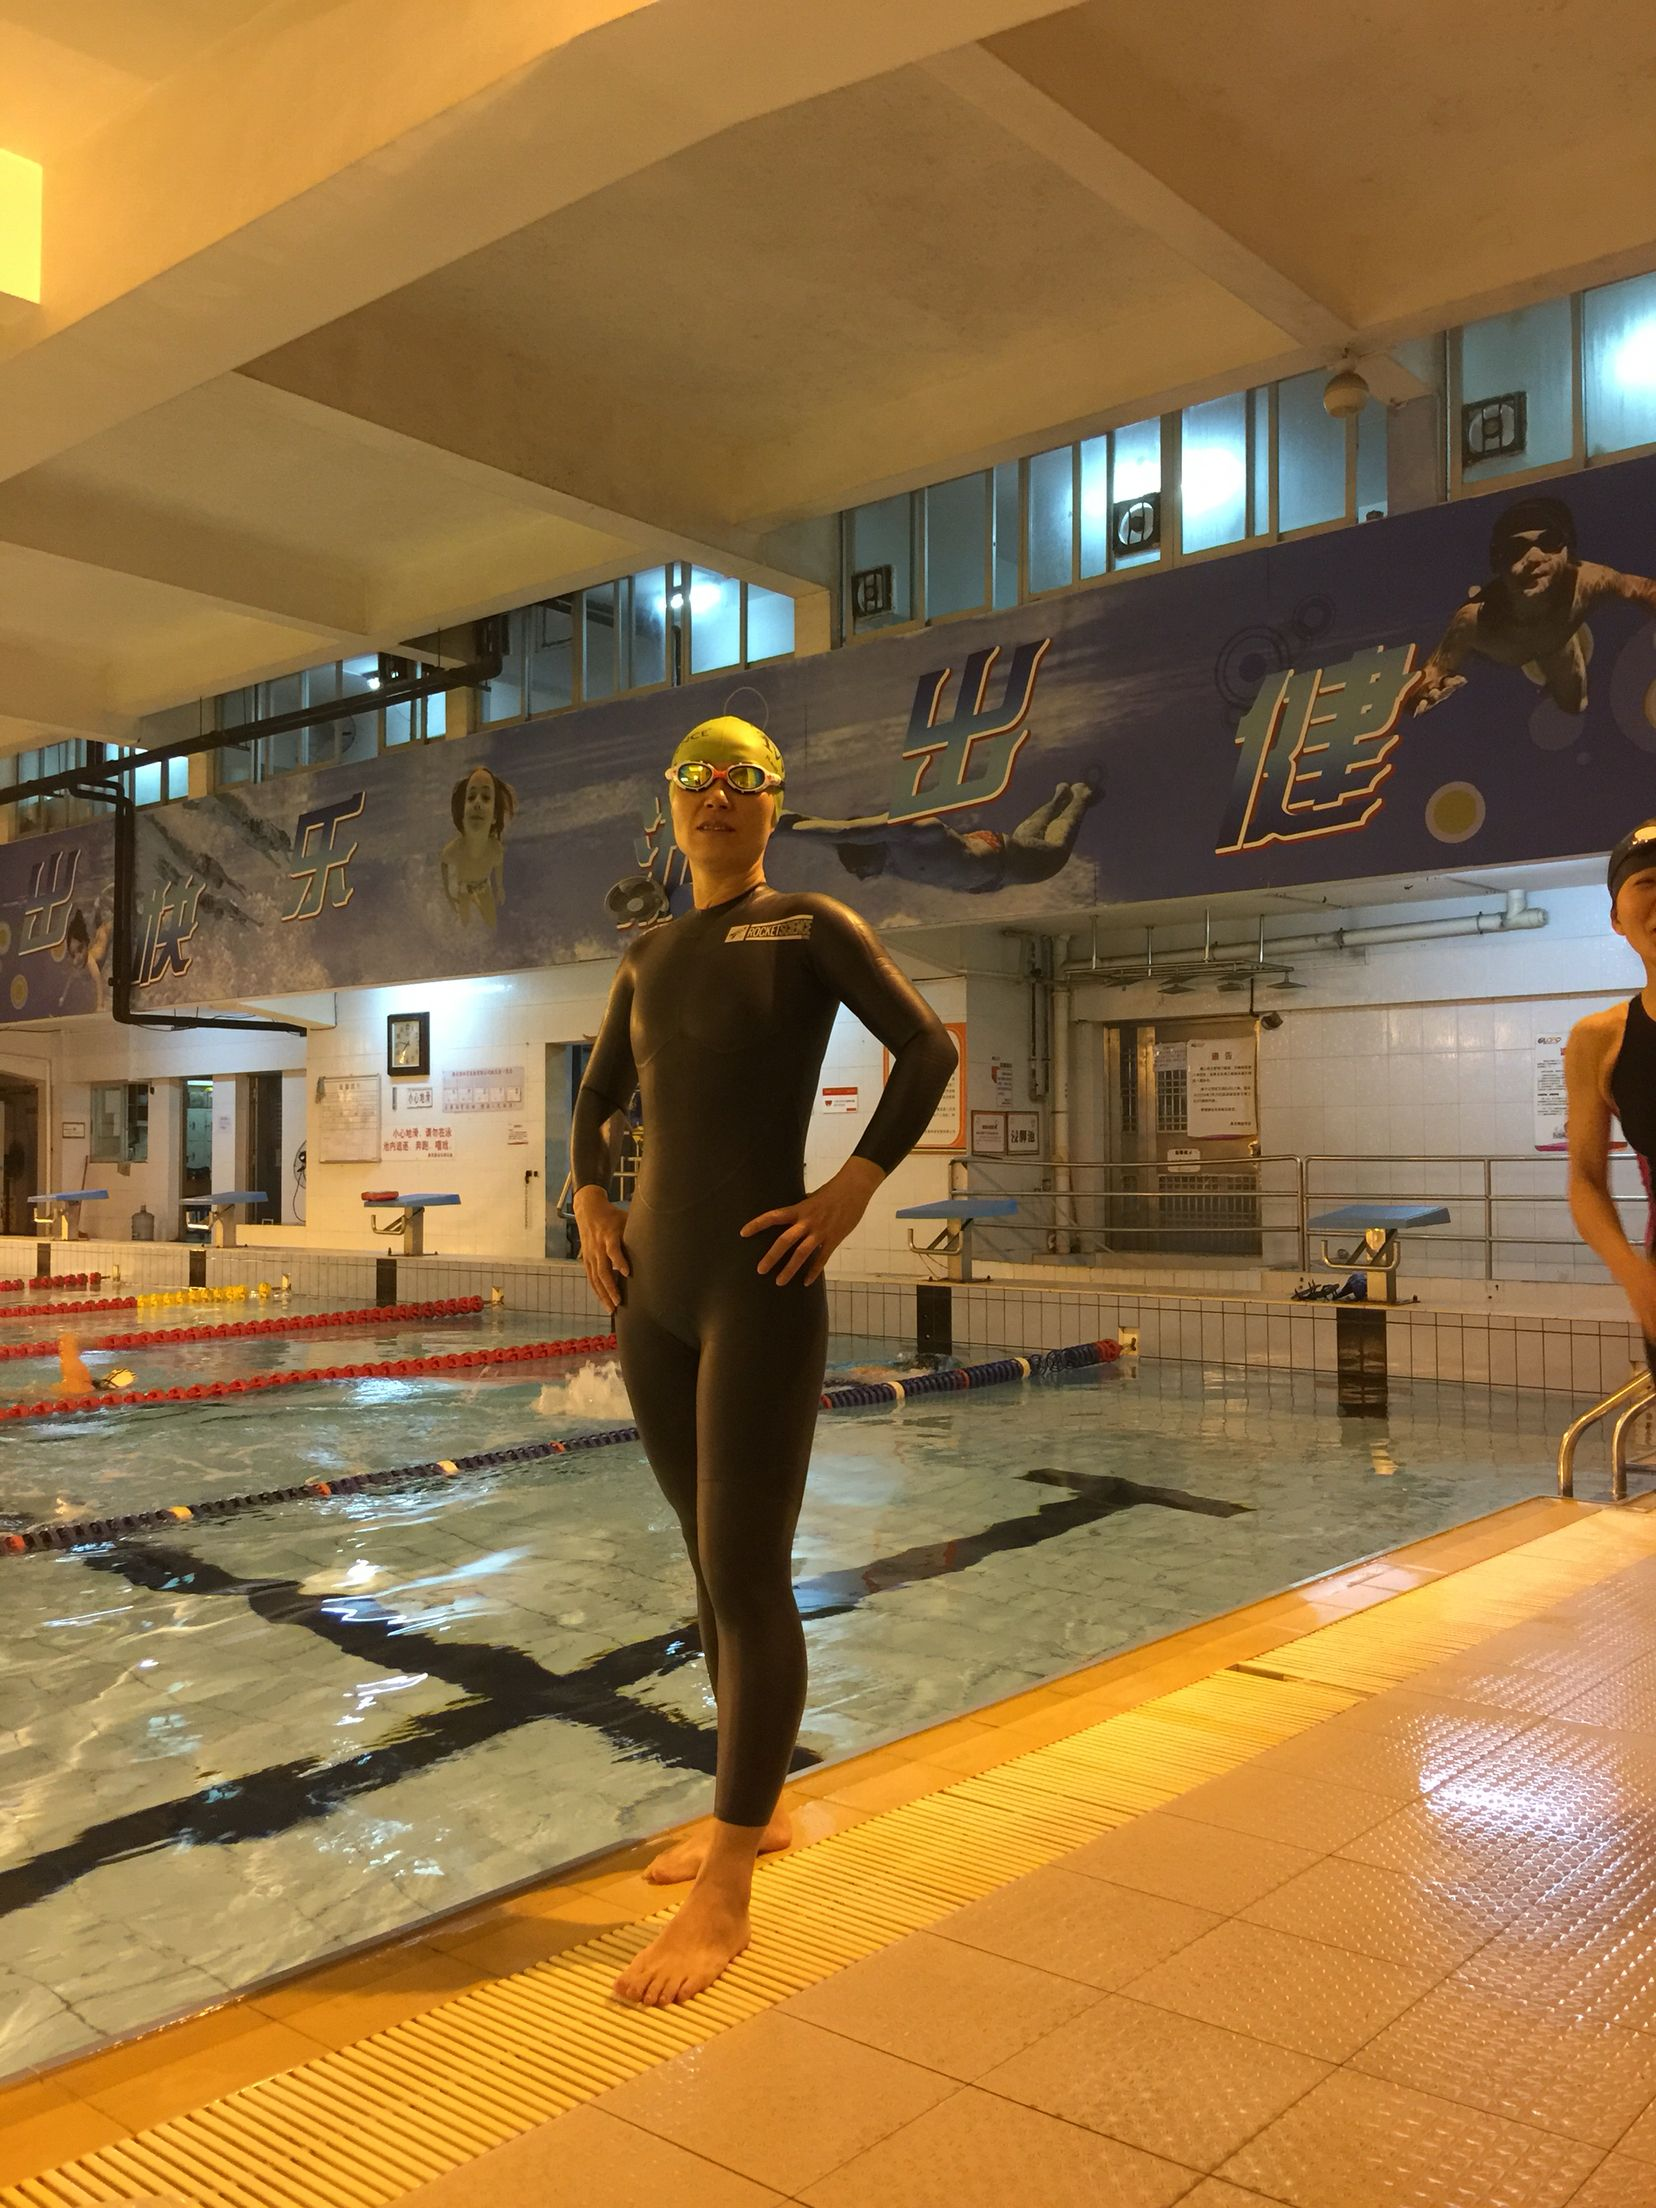 Swimming training in a bad weather. Swam in winter but not cold with a wetsuit. #RocketScienceSport